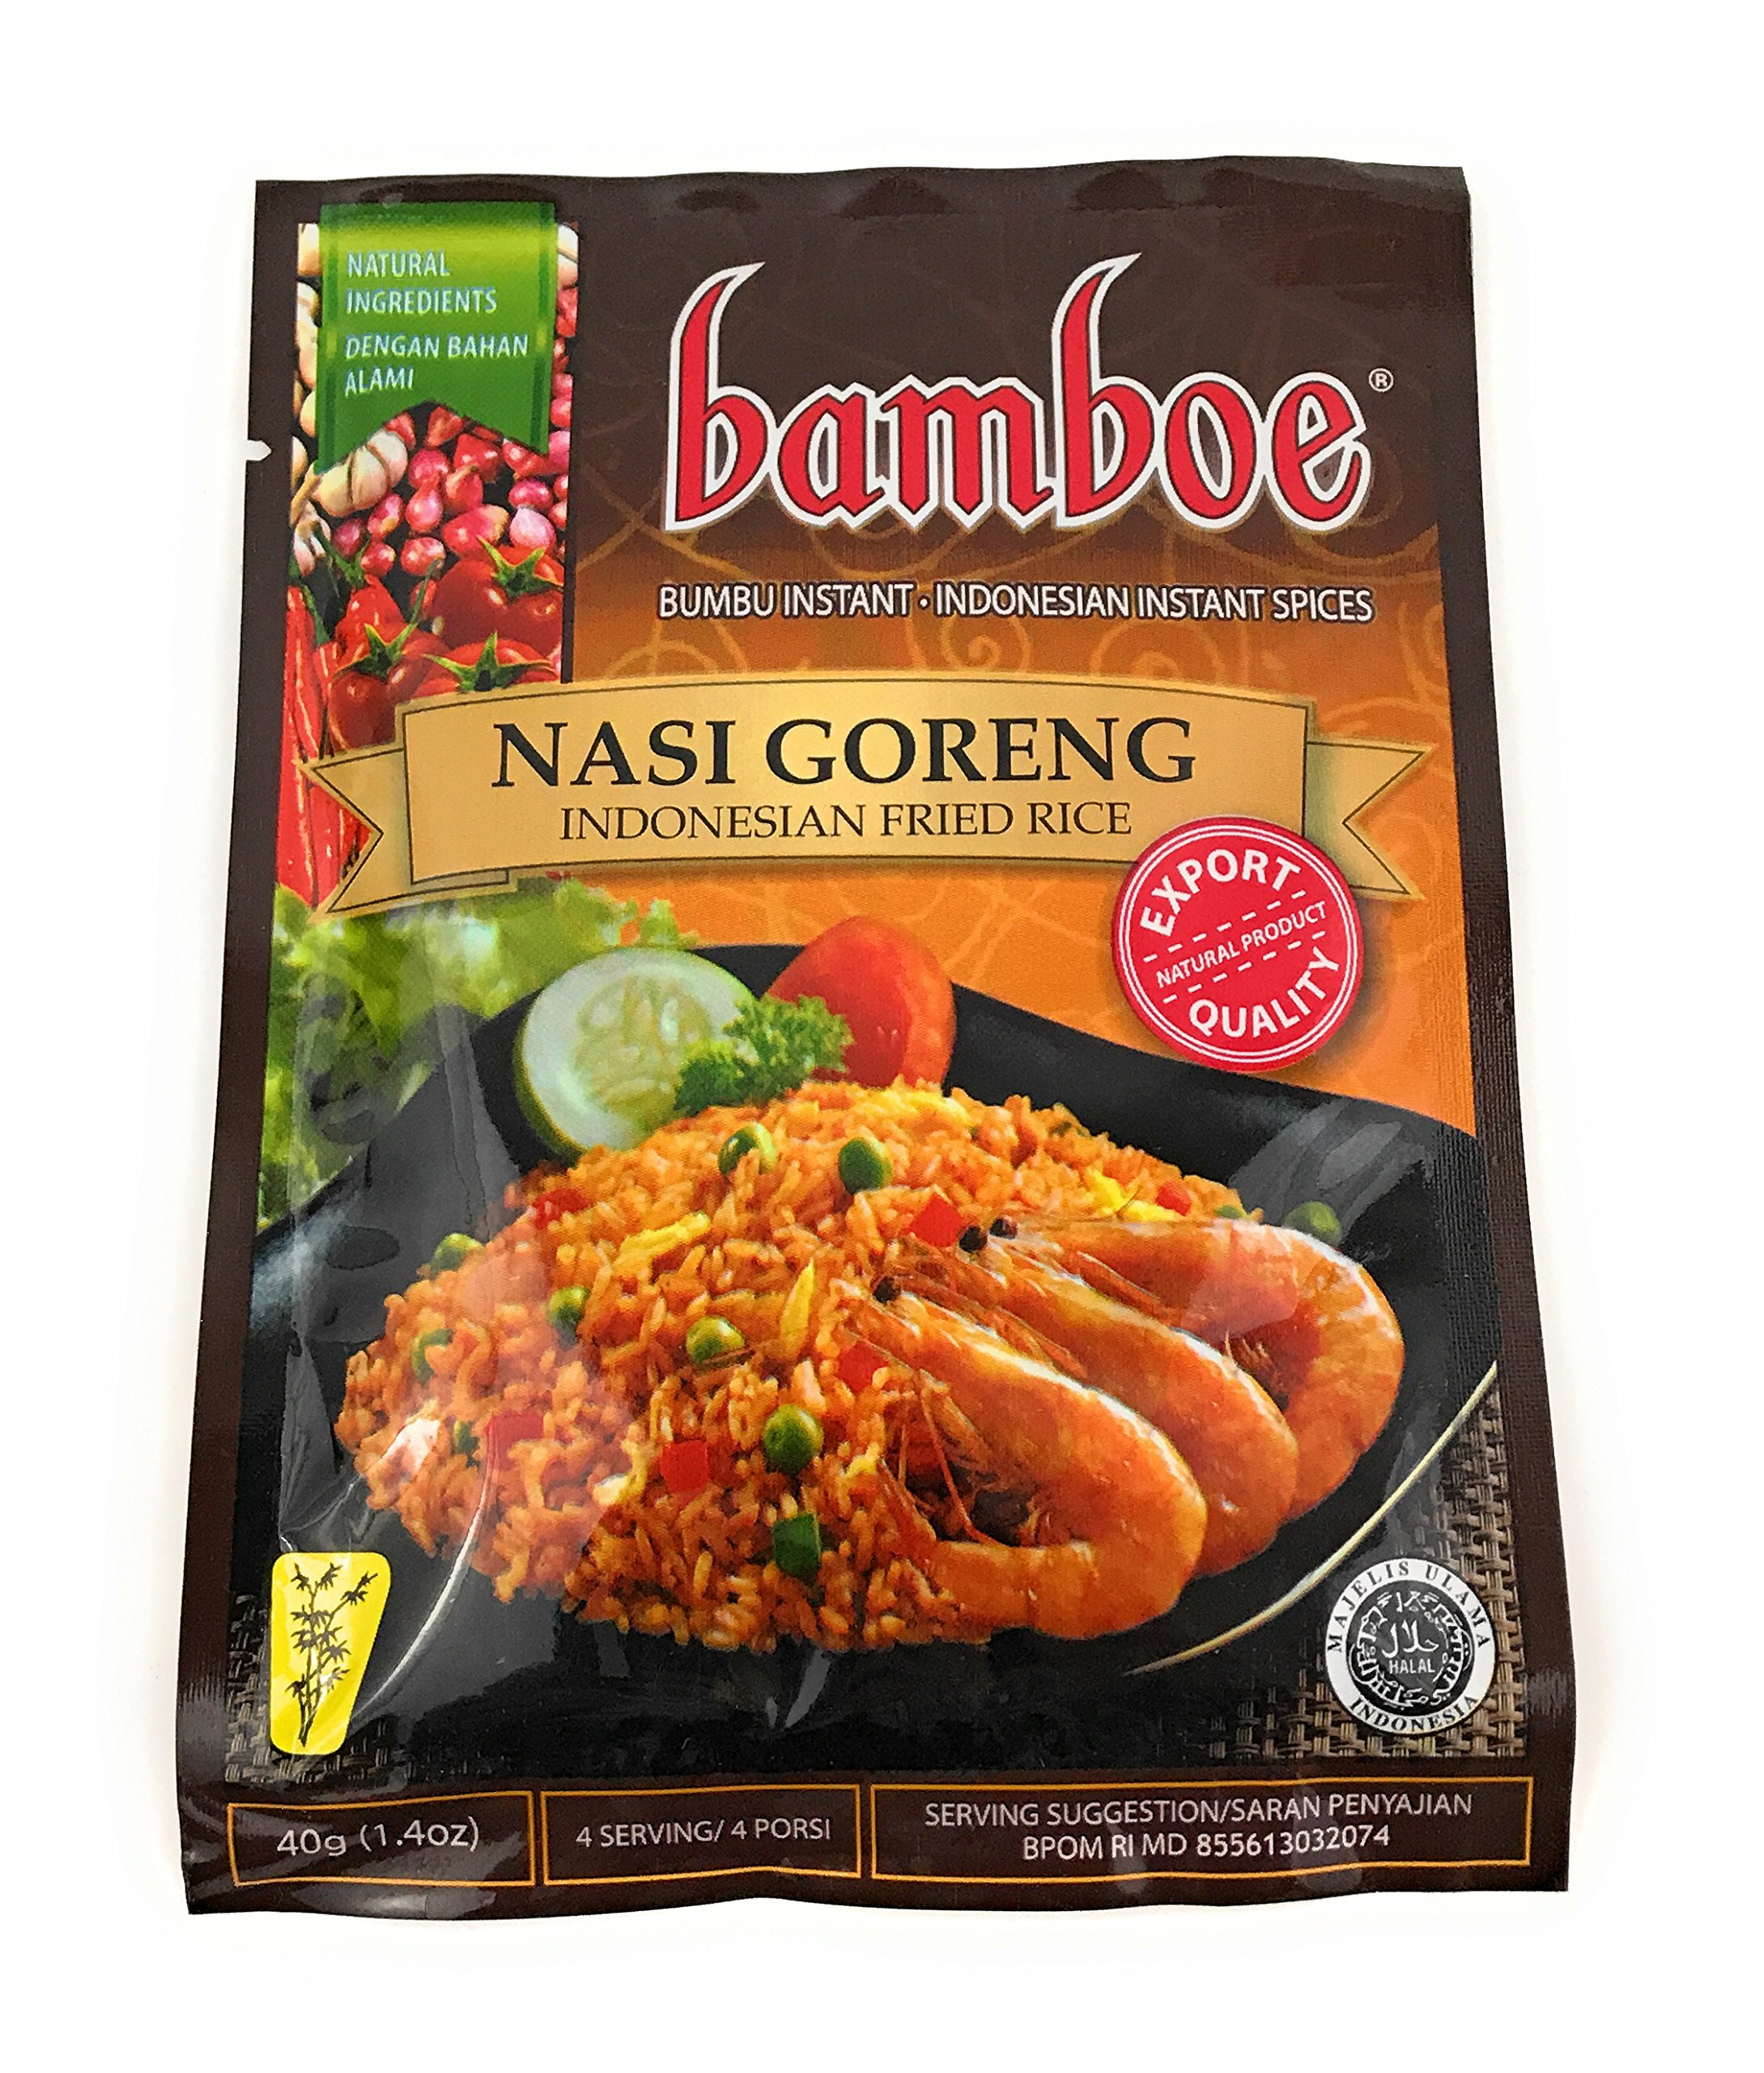 Amazon.com : bamboe - RENDANG - INDONESIAN DRY CURRY PASTE